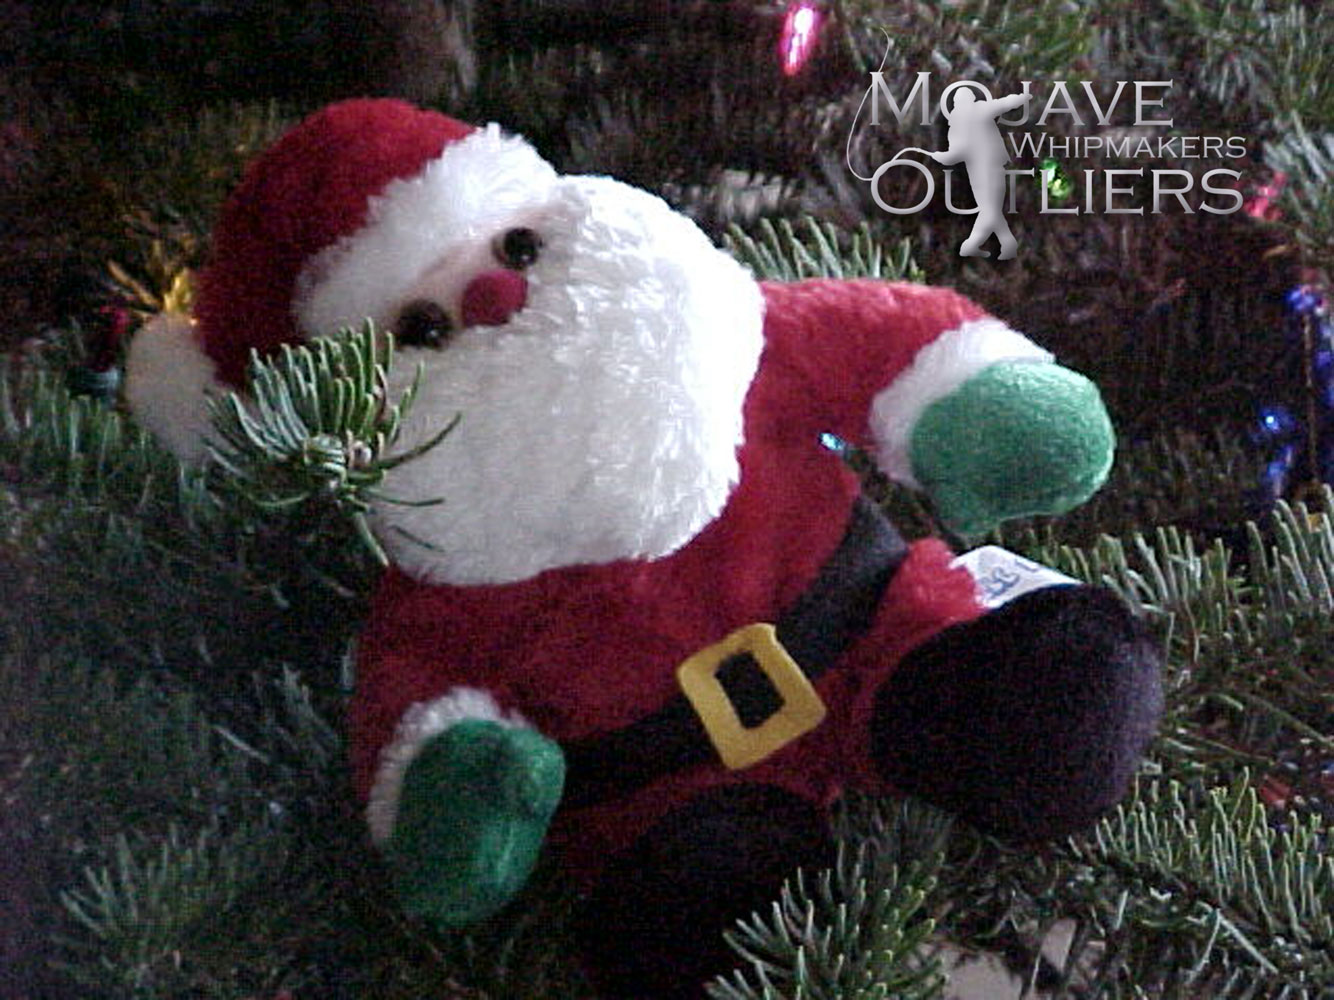 Mojave Outliers Whipmakers Santa Shipping Tips